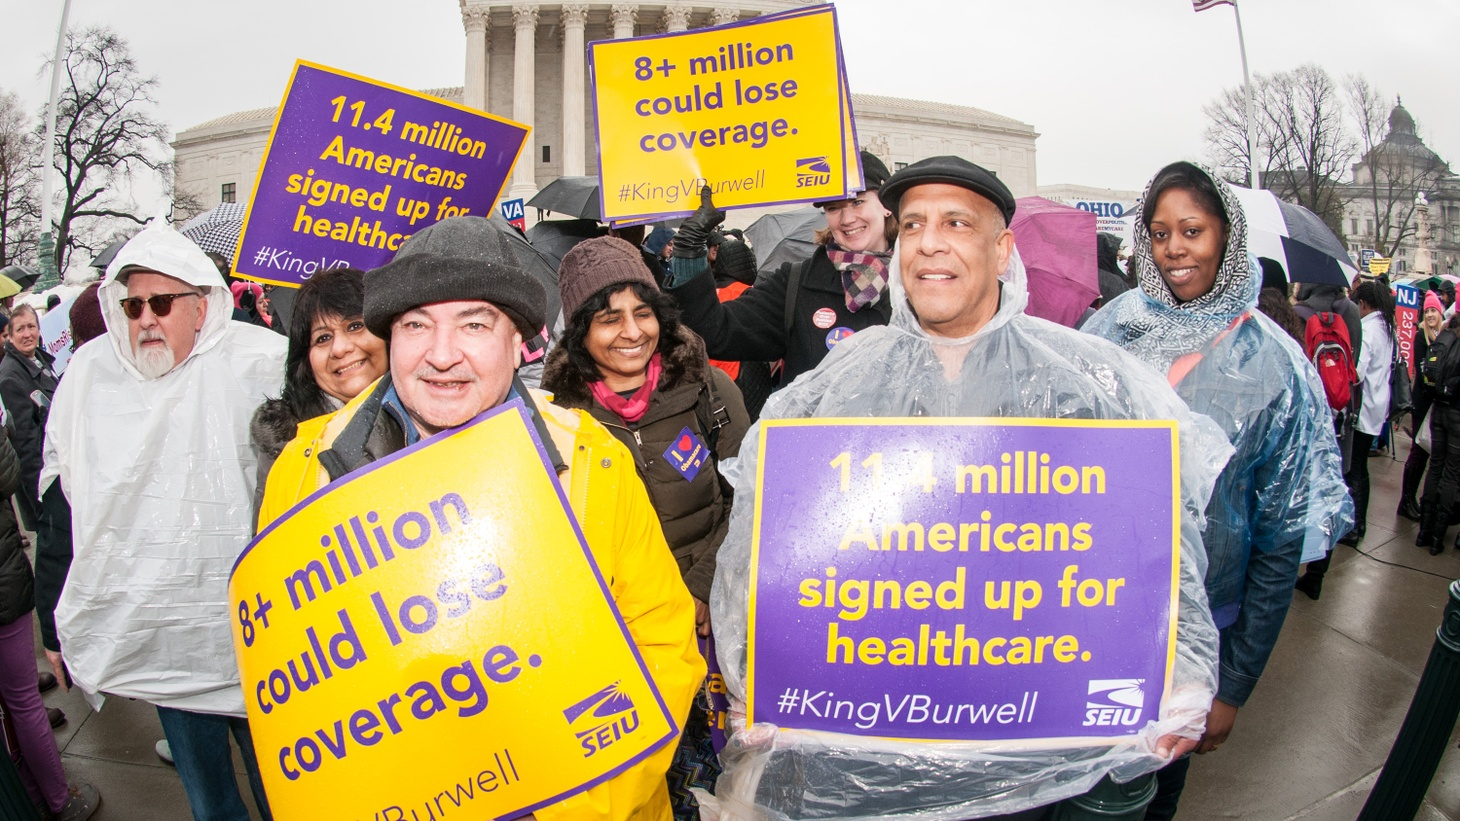 An upcoming US Supreme Court decision may shake the foundations of Obamacare. That sounds like what Republicans have been asking for, but there could be a high political price to pay.